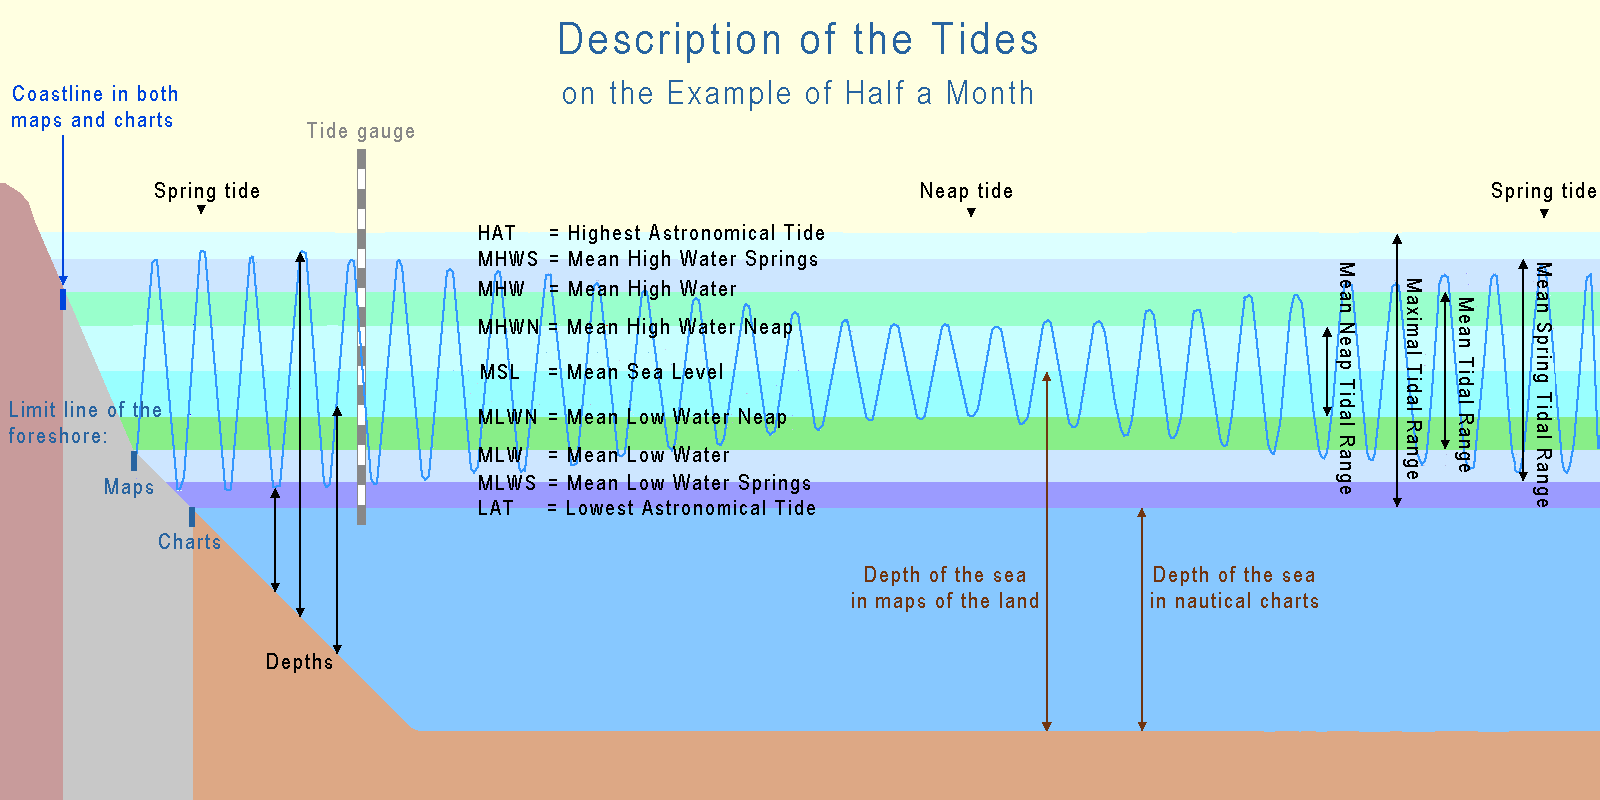 https://upload.wikimedia.org/wikipedia/commons/c/c1/Tide_terms.png